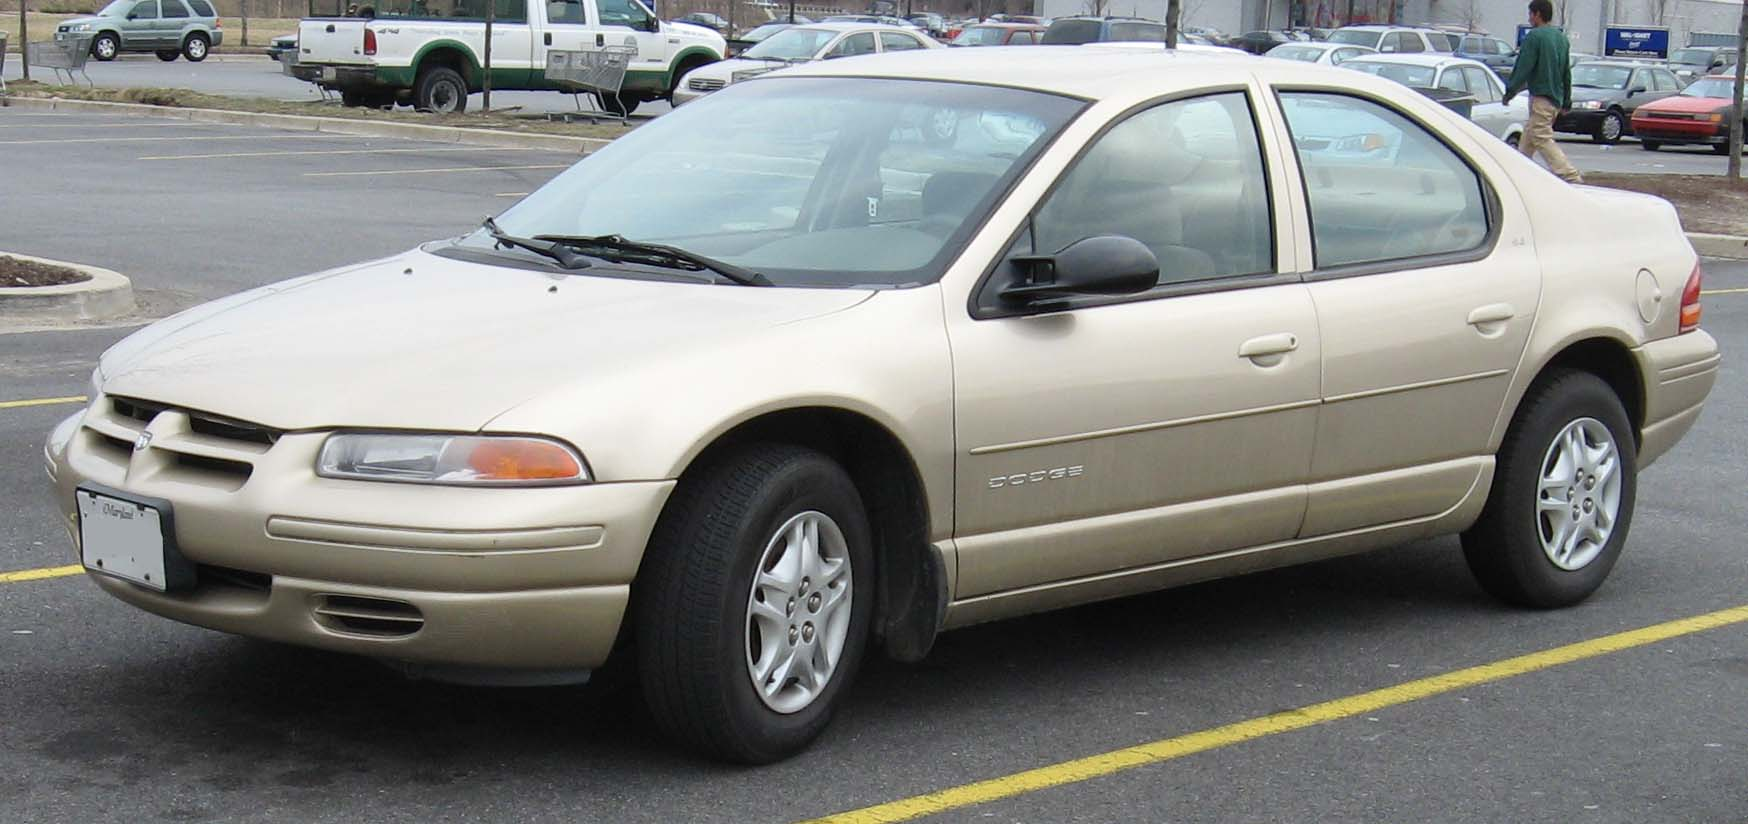 http://upload.wikimedia.org/wikipedia/commons/8/84/1st_Dodge_Stratus.jpg